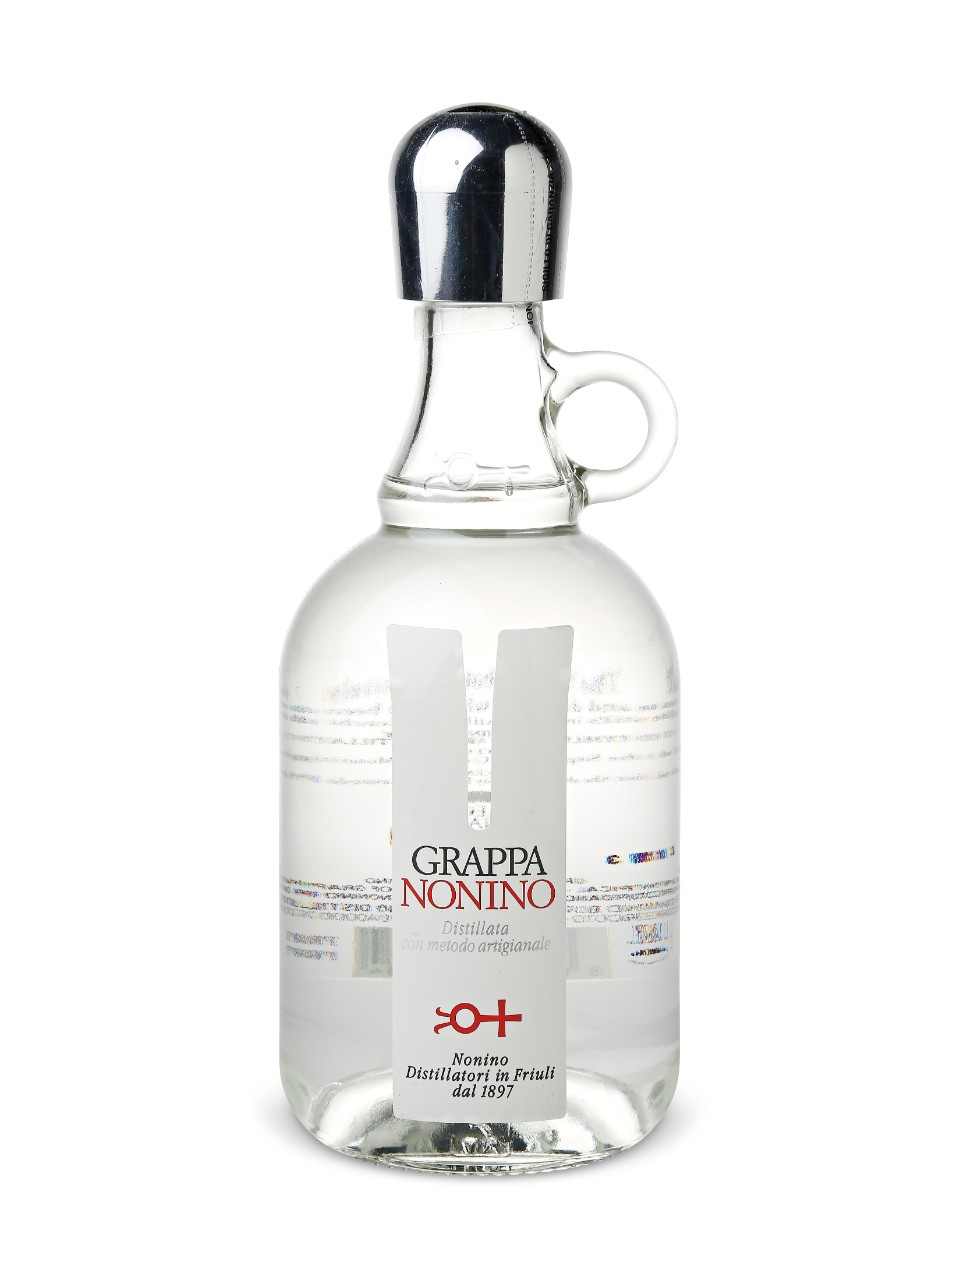 Grappa - what it is How to drink this alcoholic drink 35